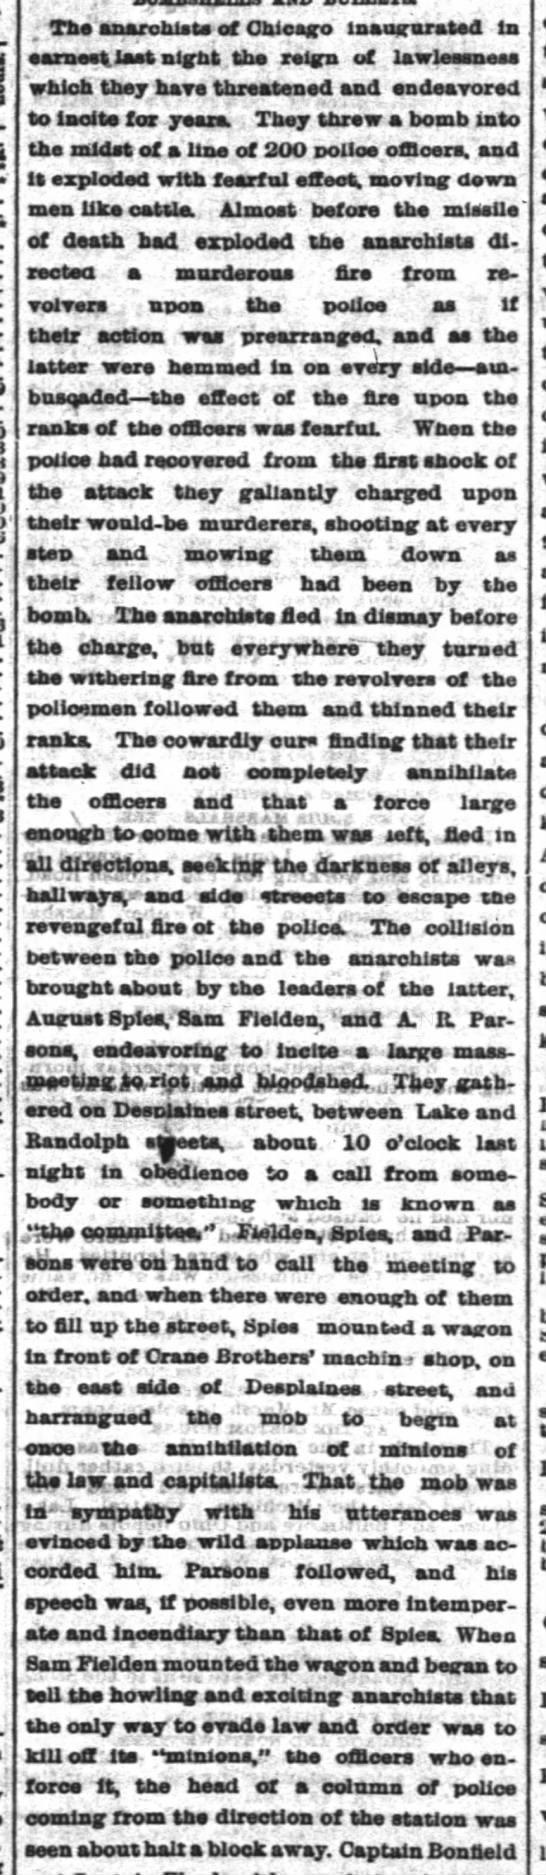 Dramatic pro-police, anti-anarchist account of the Haymarket Riot - - The anarchists of Chicago inaugurated la...